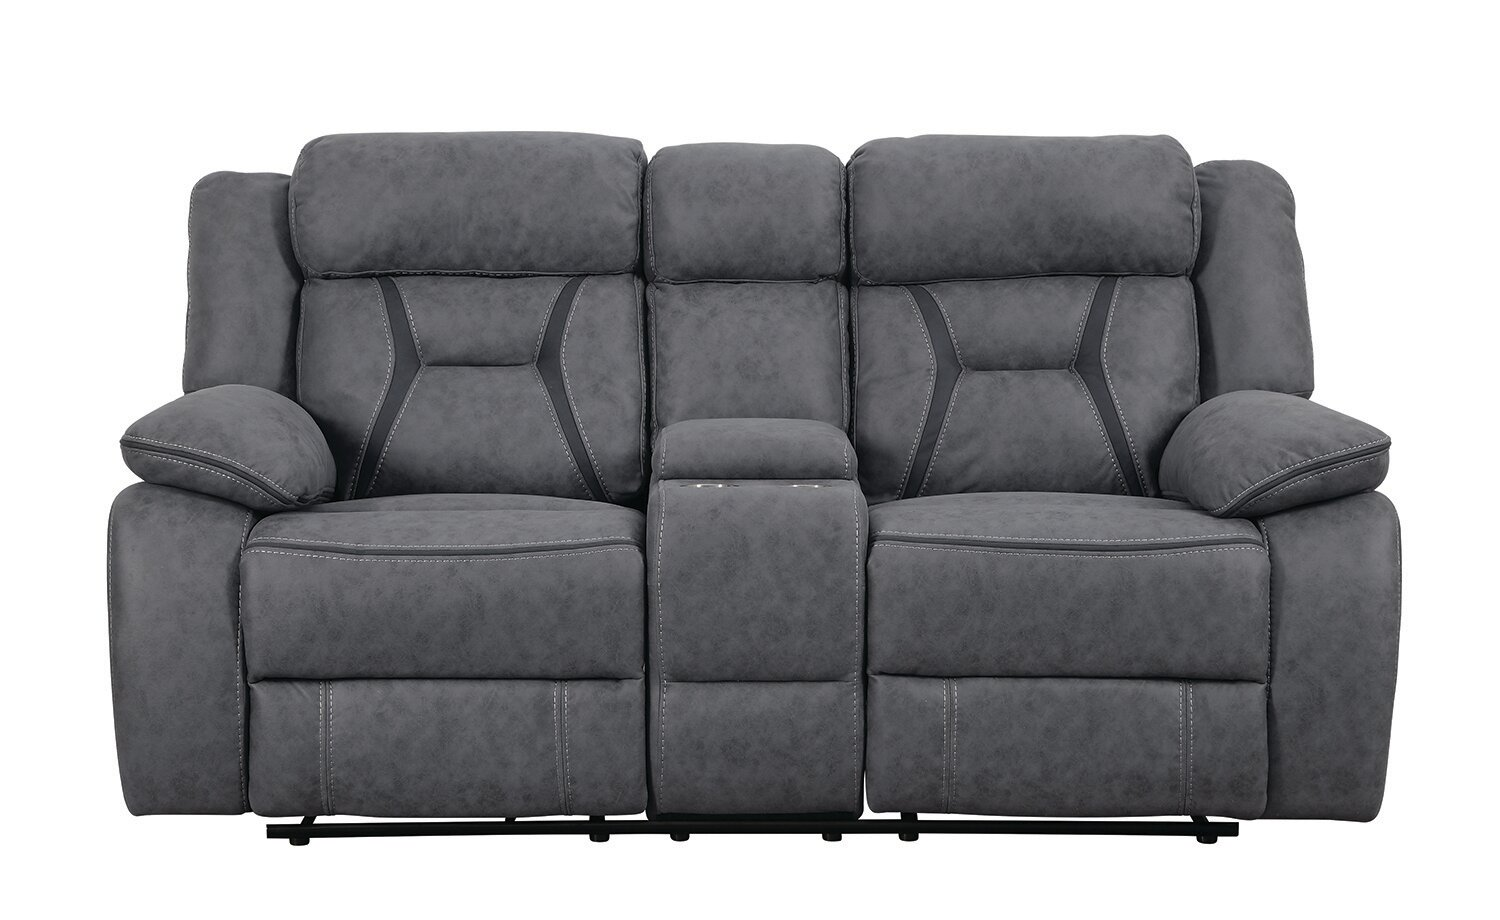 Outstanding Tien Reclining Motion Loveseat With Console Gamerscity Chair Design For Home Gamerscityorg